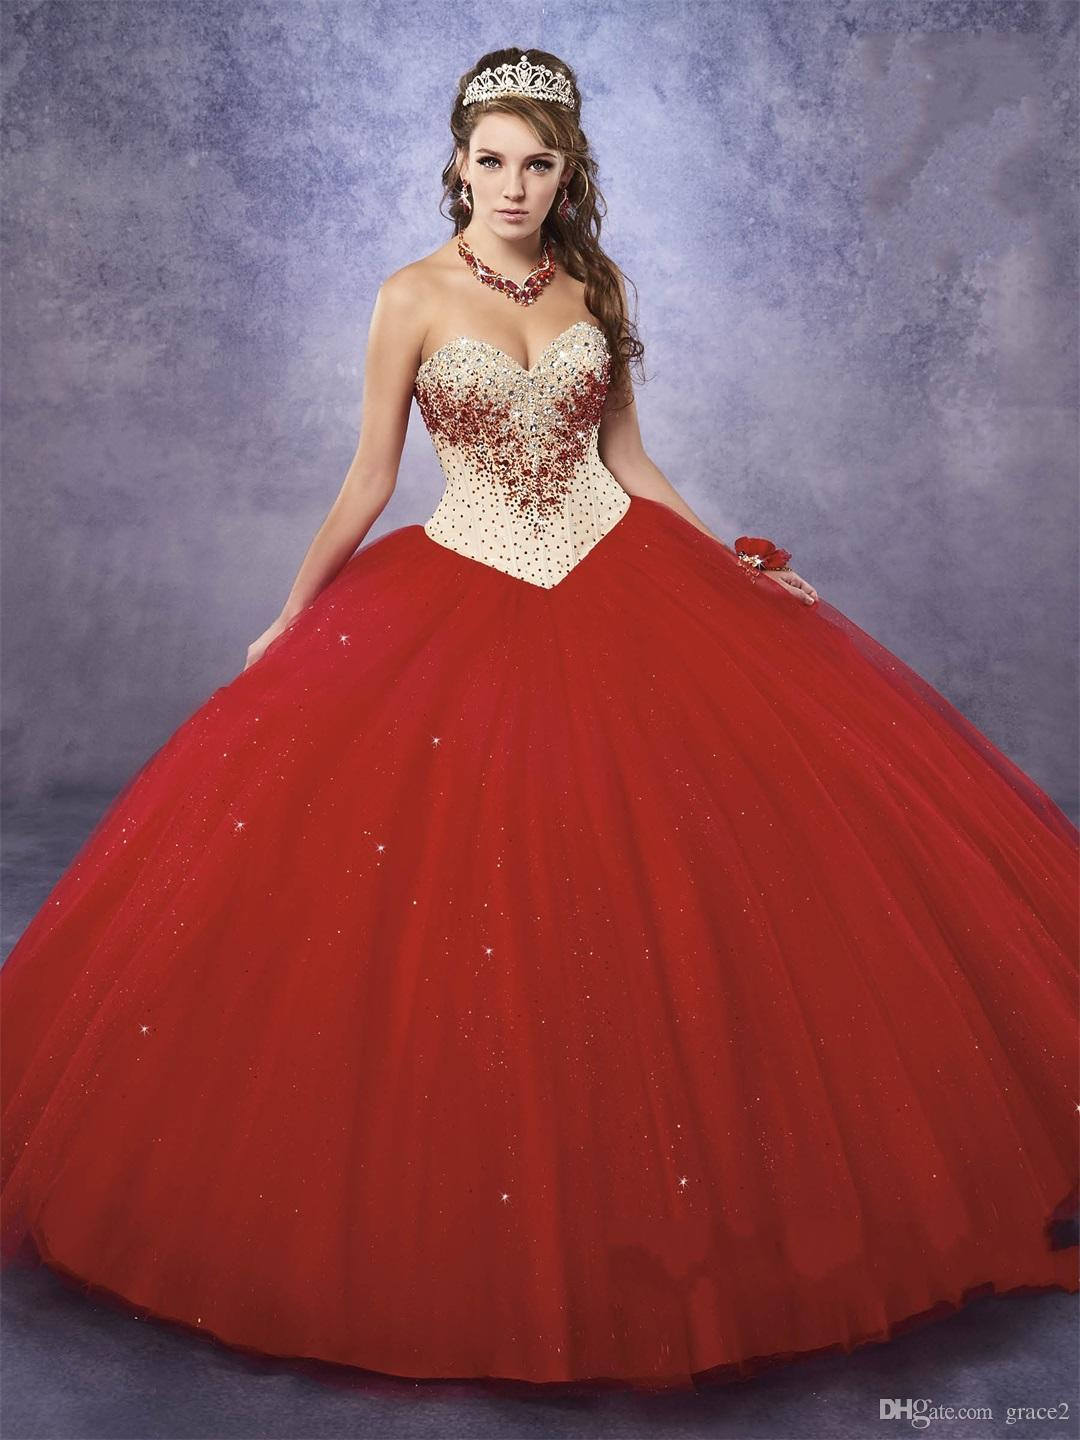 40dff728154 Sweetheart Champagne And Bright Red Quinceanera Dresses With Free Bolero Princess  Dress For Sweet 15 16 Birthday Gowns Marys Quinceanera Dresses Mexican ...